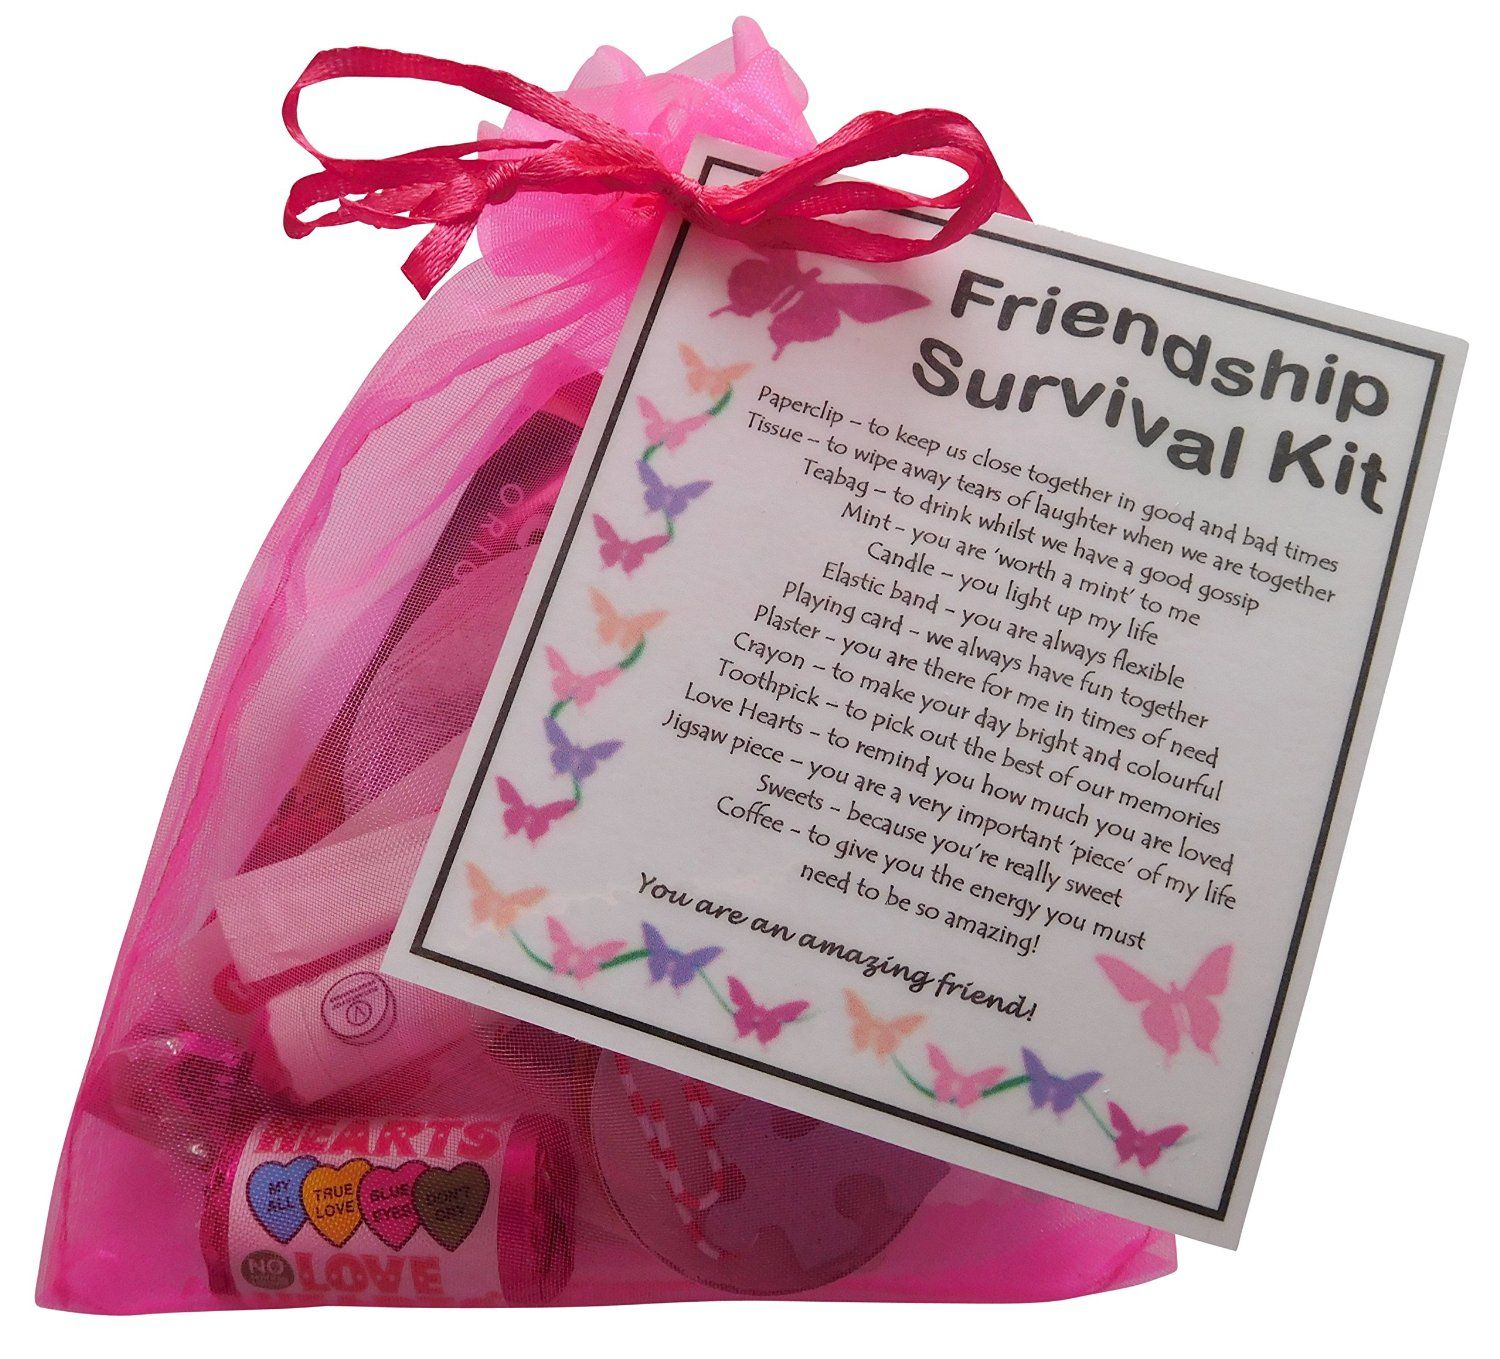 18th Birthday Survival Kit Birthday Gift Novelty Present: Friendship Survival Kit Gift (Great Friend Gift For